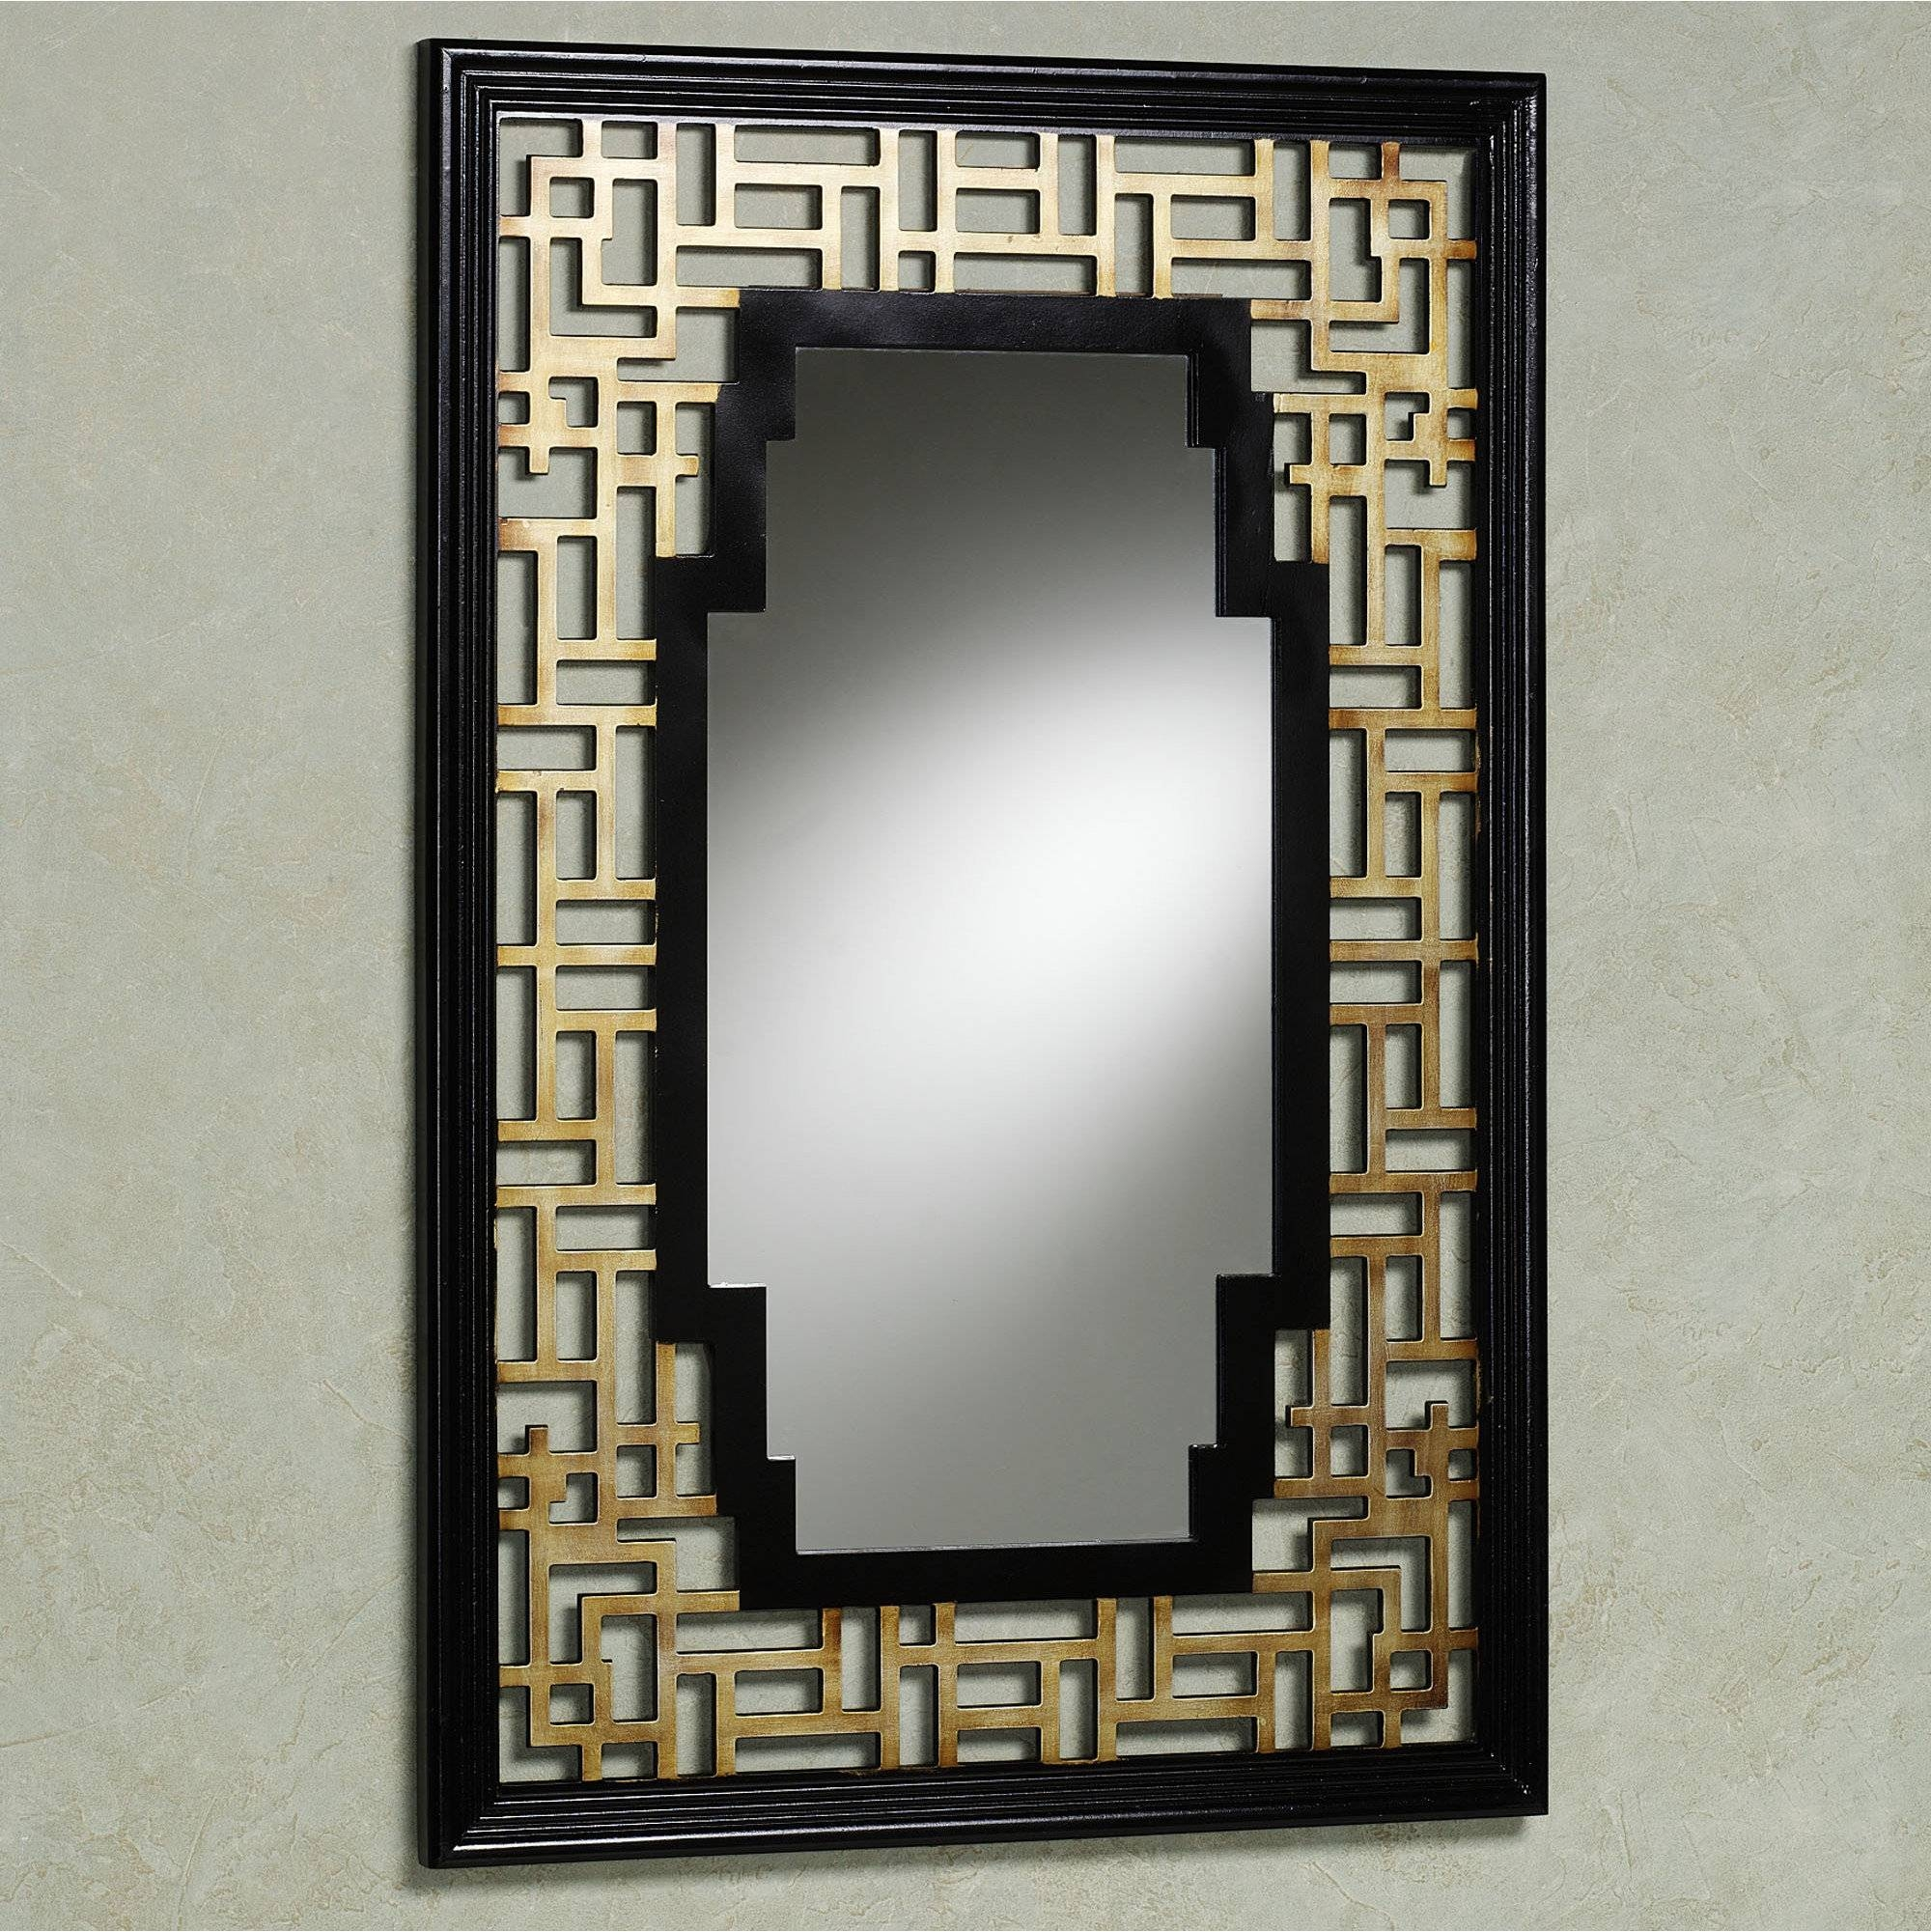 Classic Oval Wall Mirrors With Twig Pattern Frames As Traditional for Black Oval Wall Mirrors (Image 5 of 25)